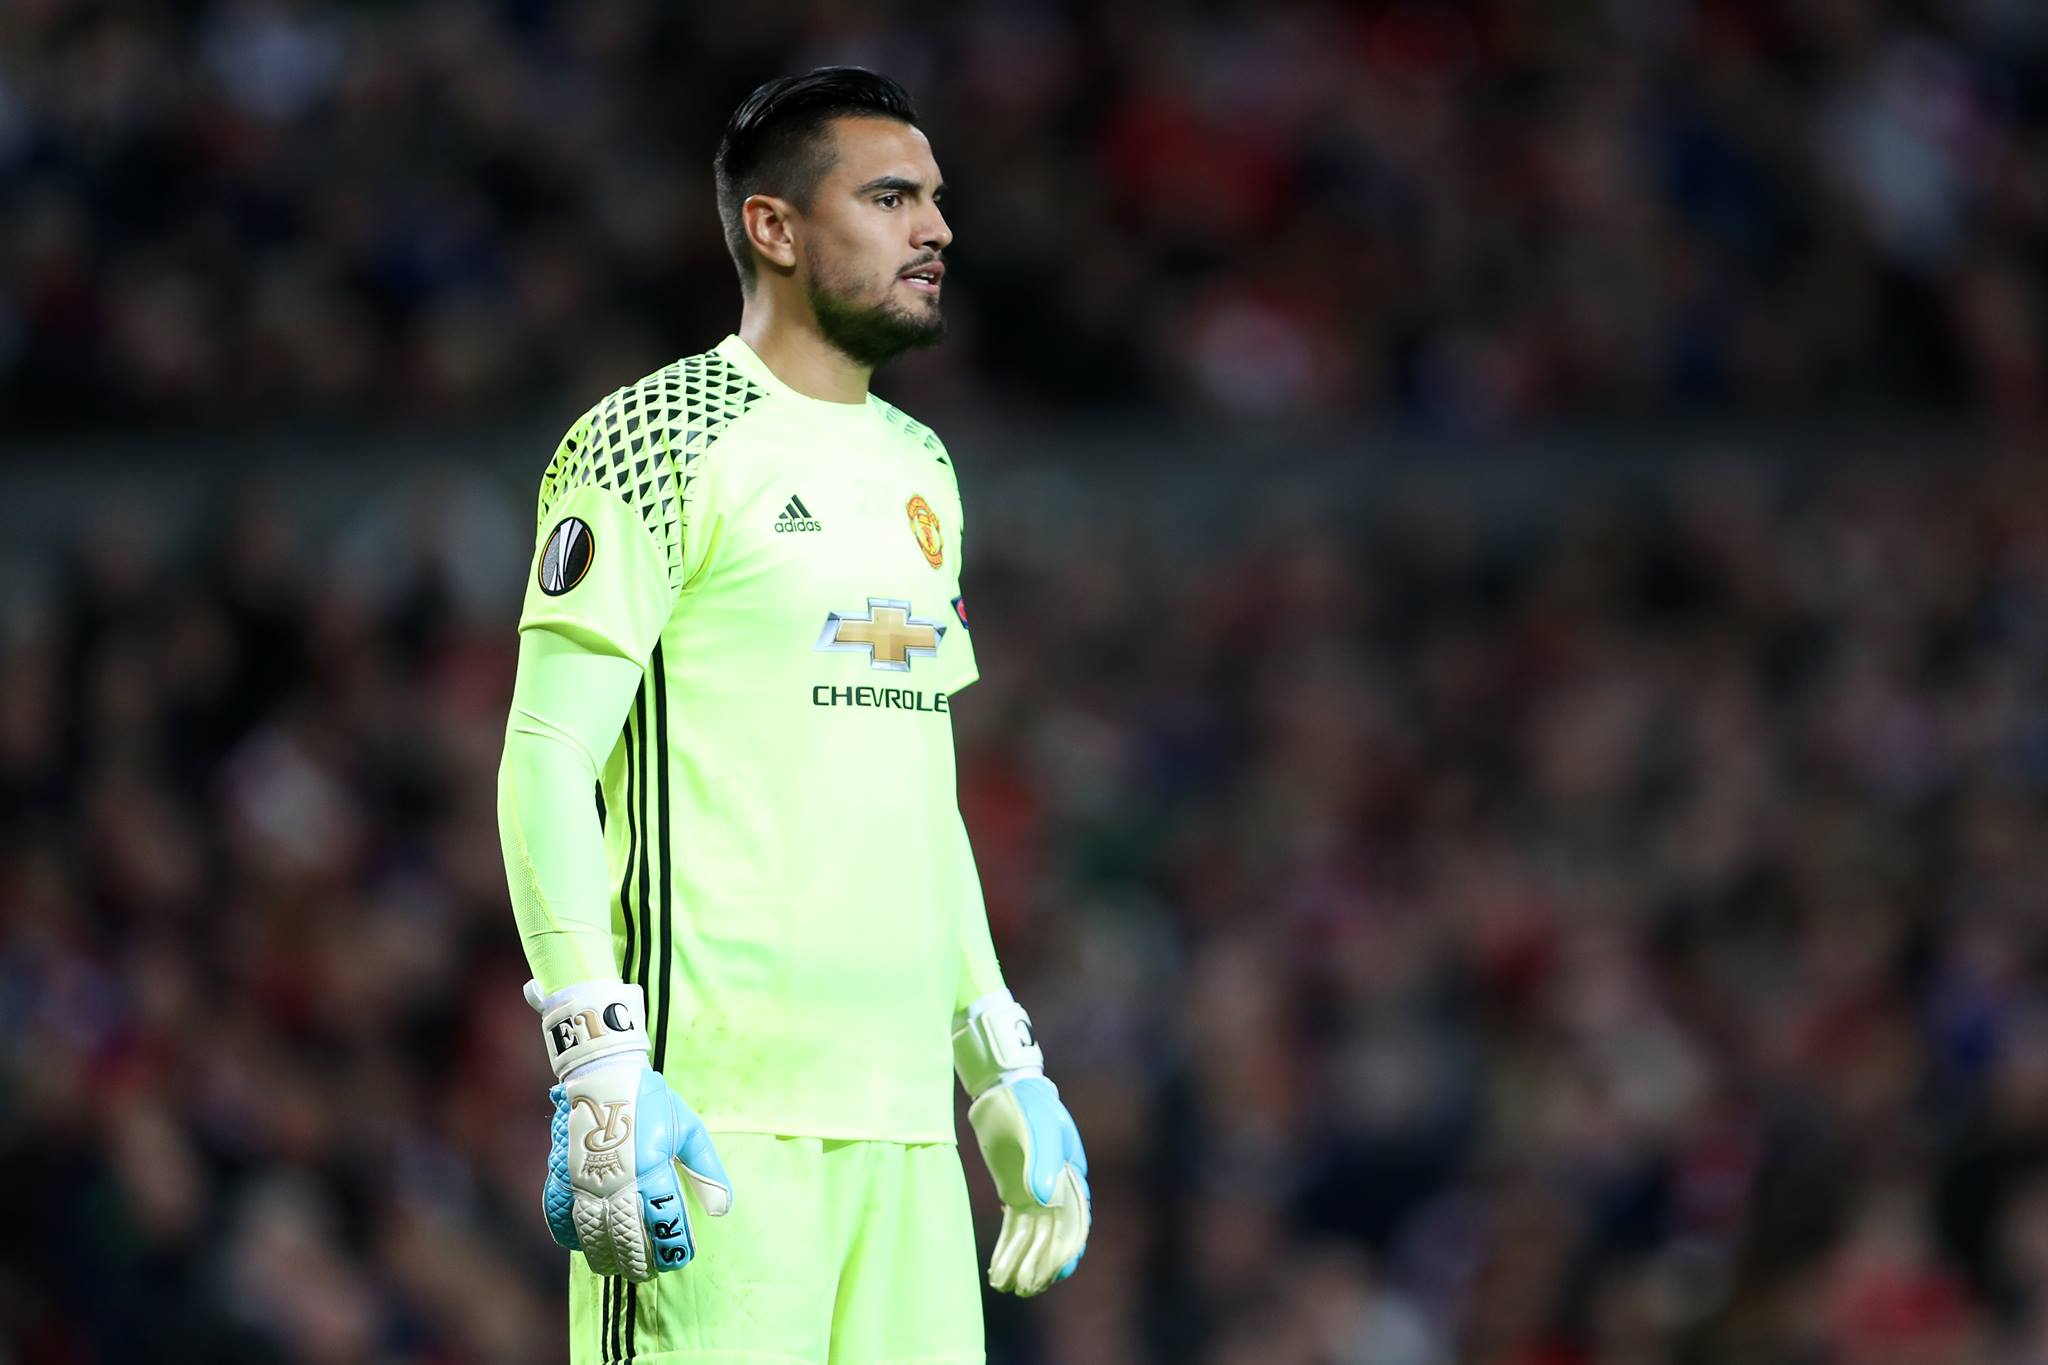 Mourinho: Romero will start Europa League final